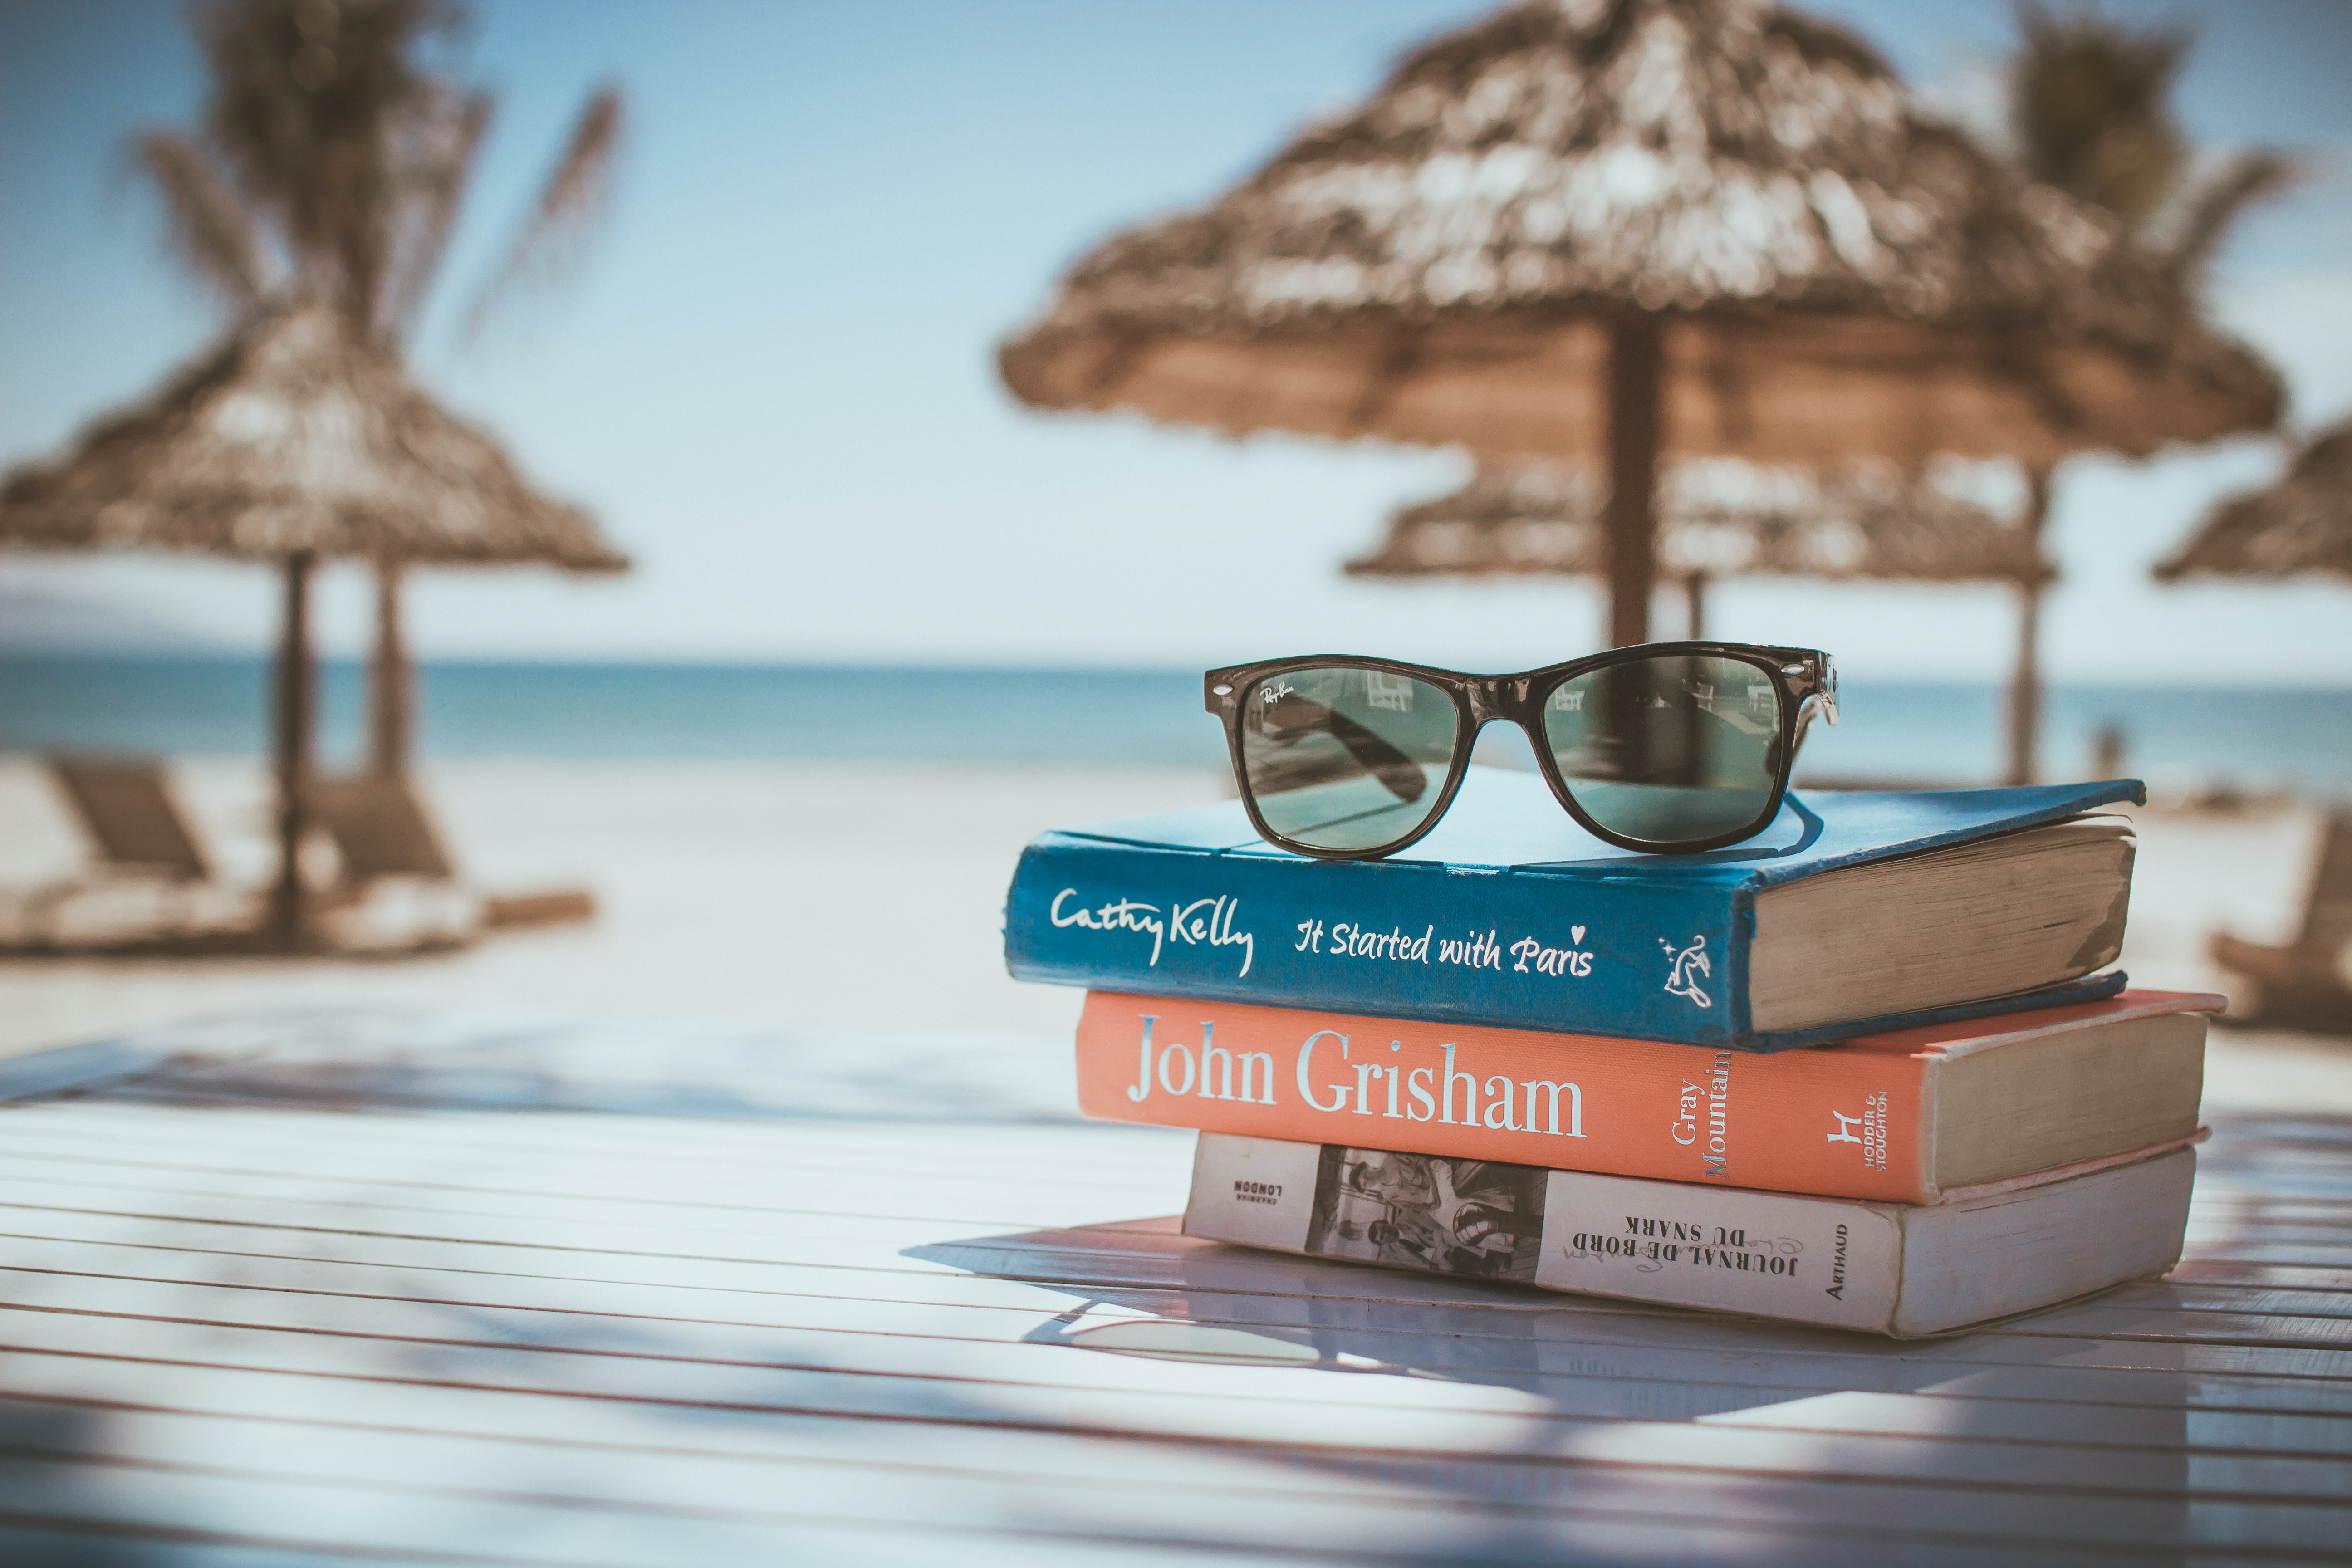 A pair of sunglasses is on top of books by famous authors on a beach table.